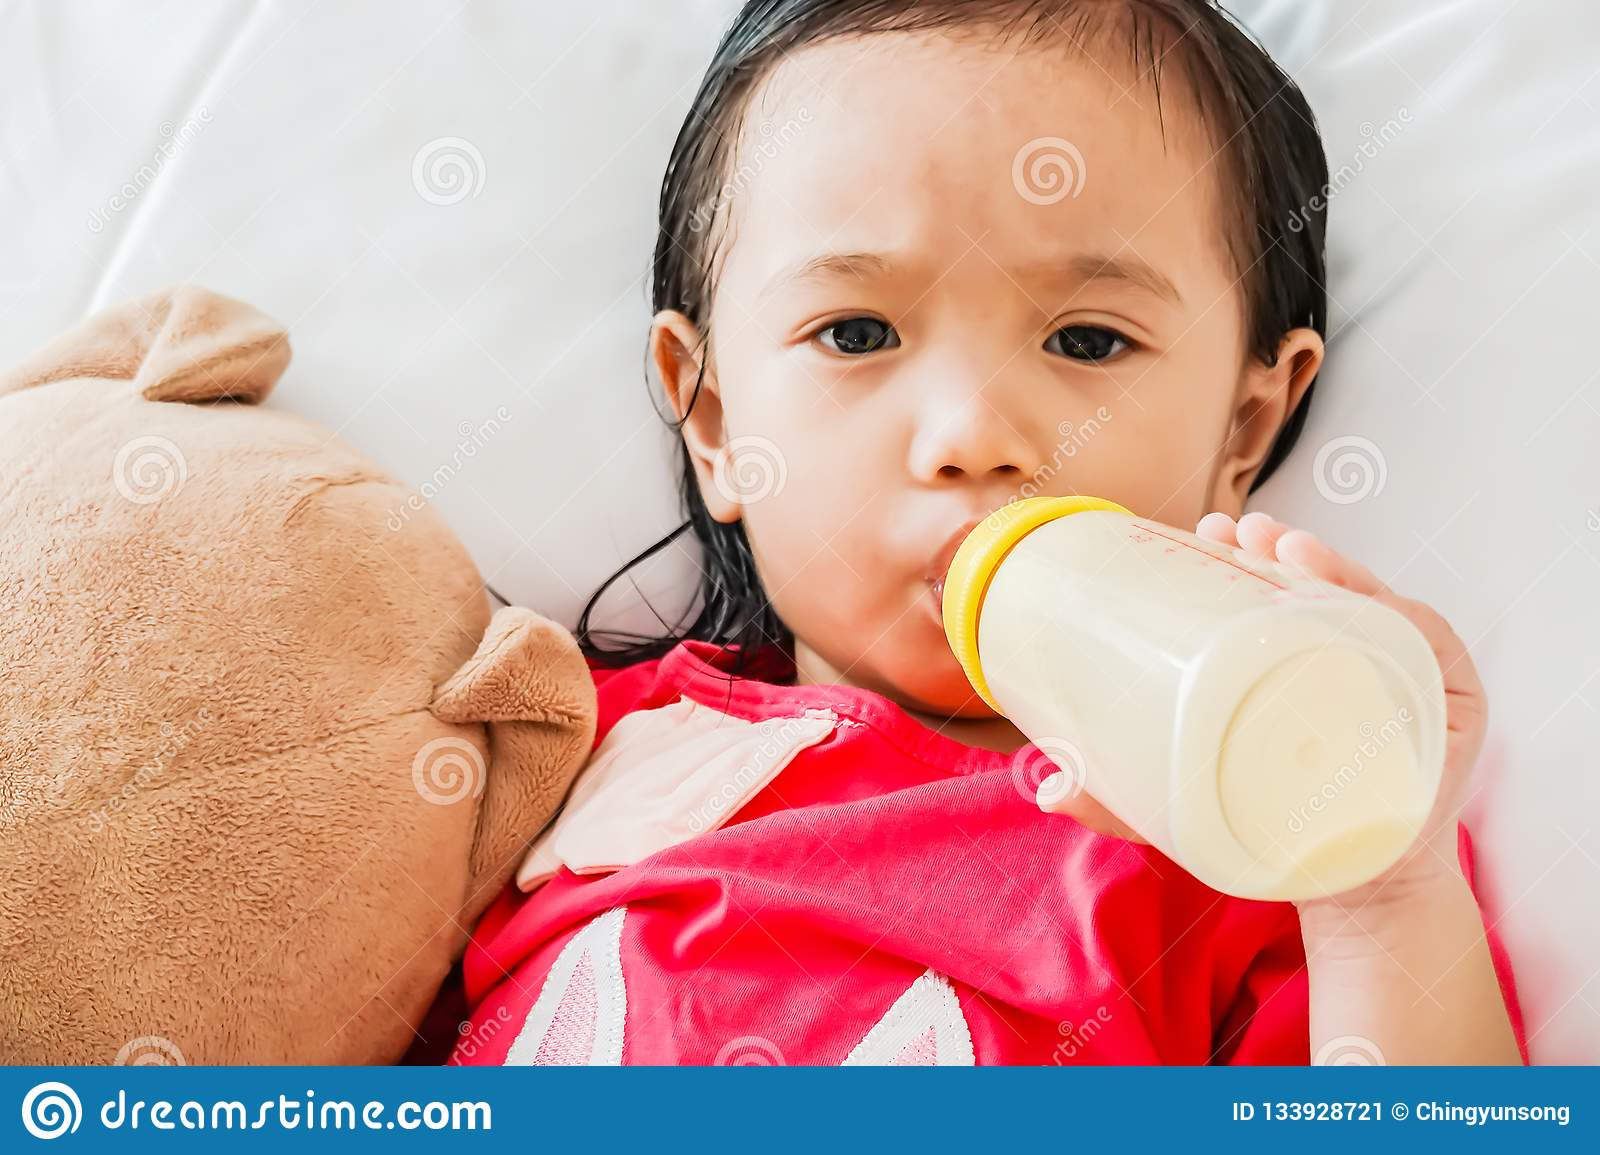 Asian cute baby girl drinking milk from bottle and sleeping on bed